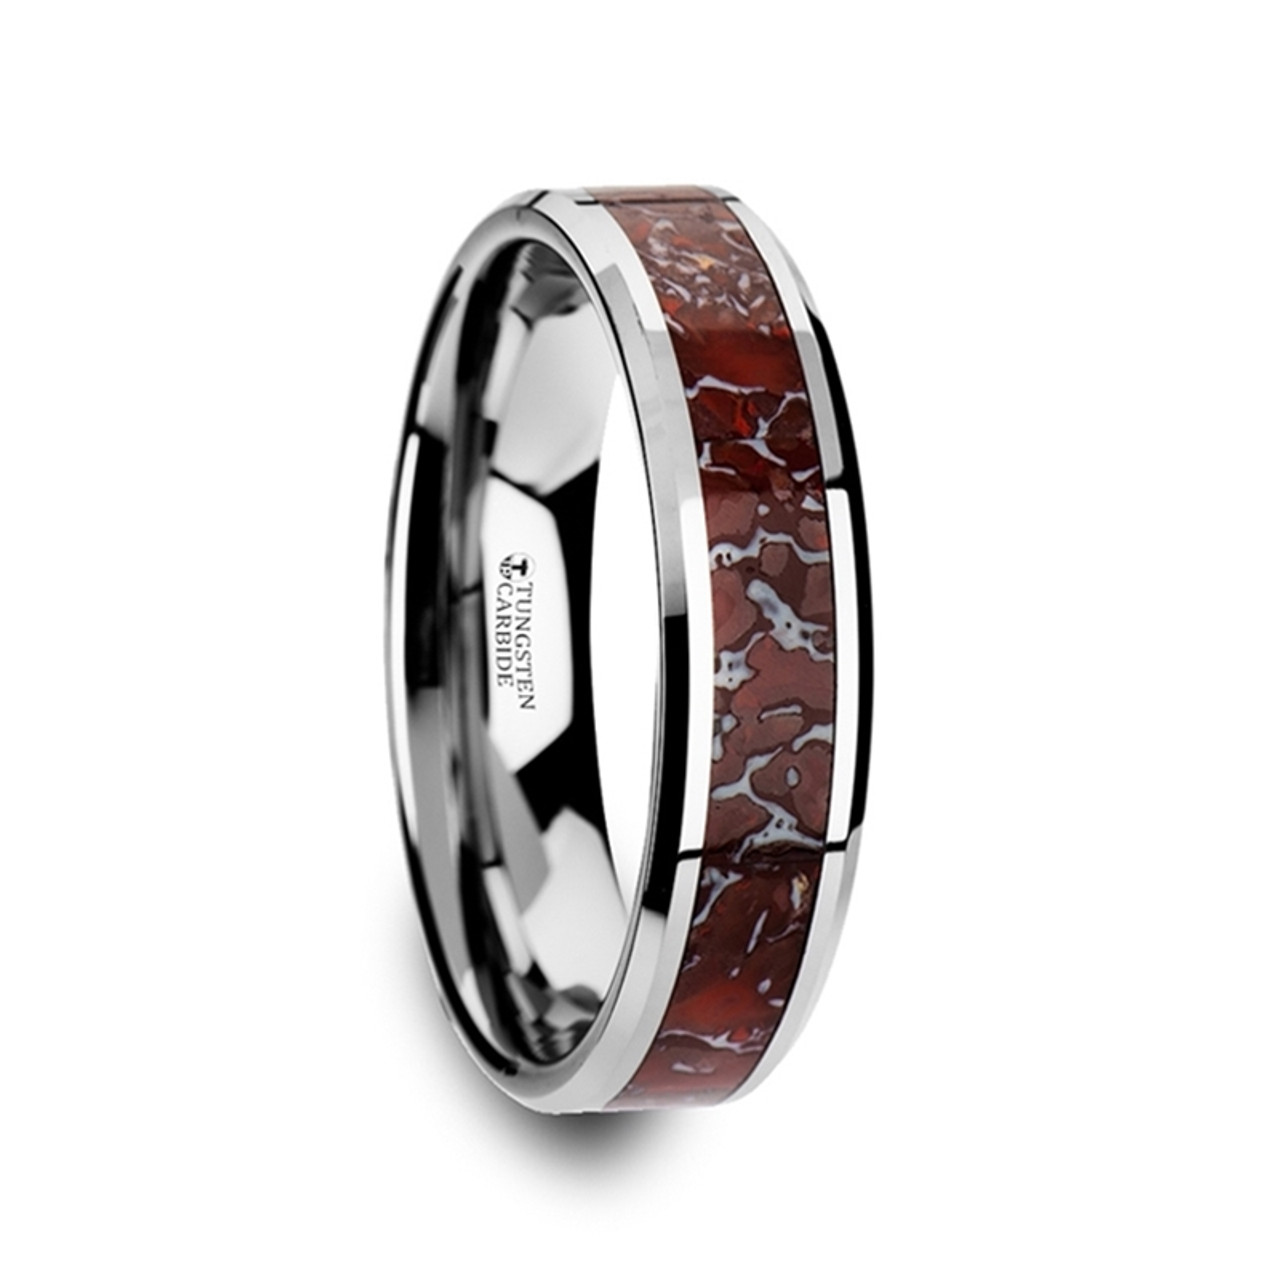 s ring inlay band rings men beveled in ceramic mens dinosaur bone black wedding